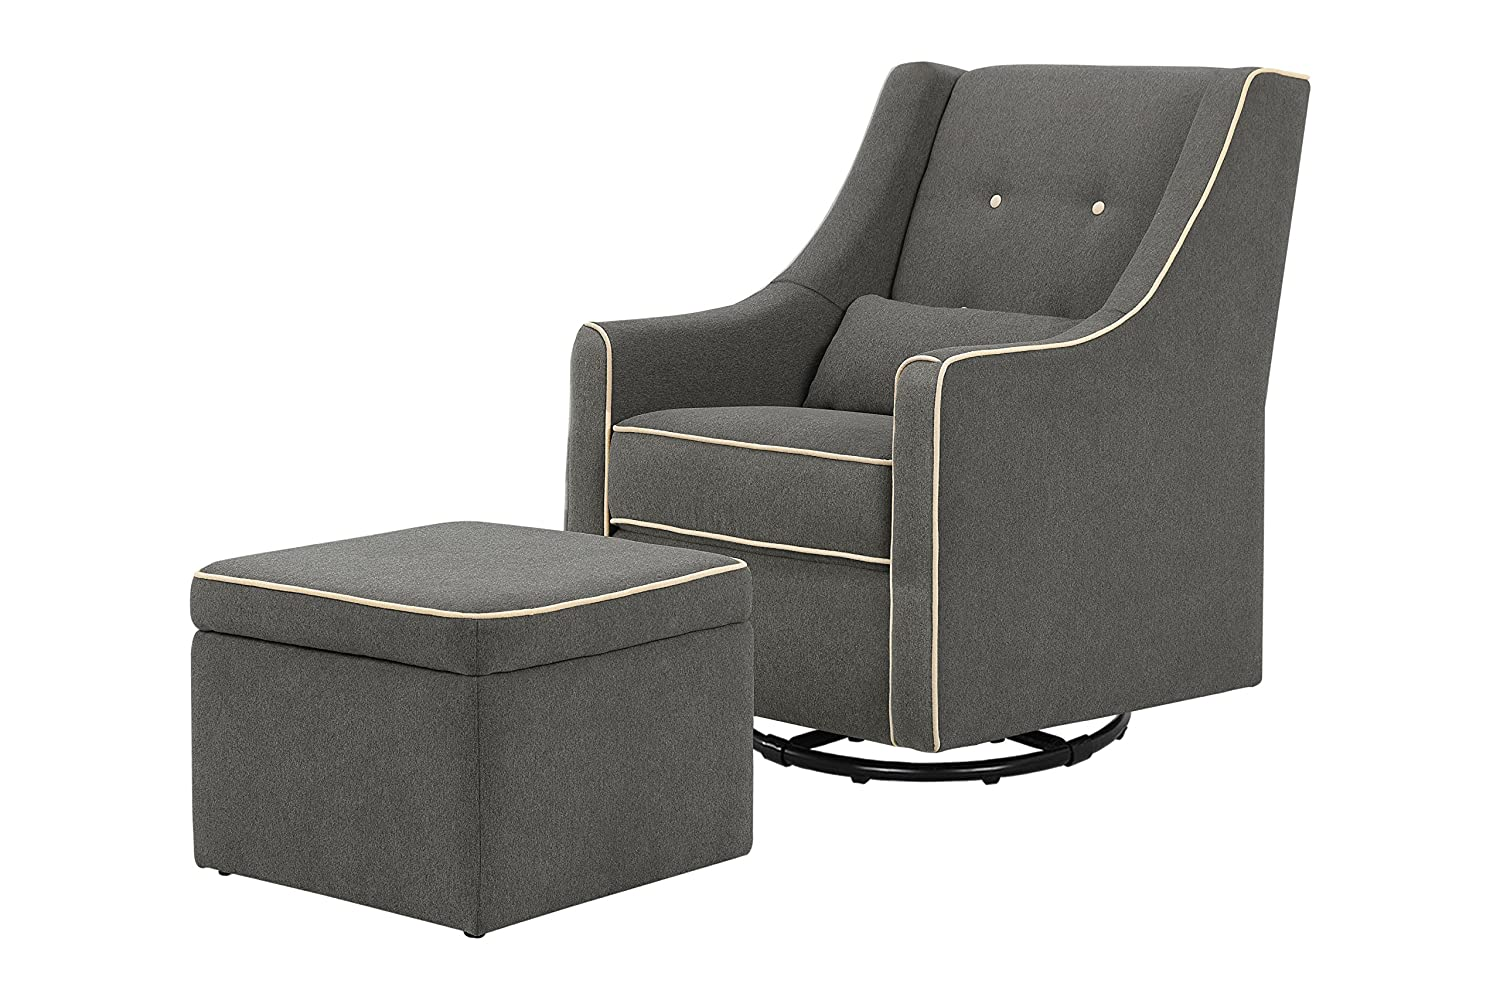 Davinci Owen Glider and Ottoman, Dark Gray and Cream Piping DaVinci - DROPSHIP M13687GYCM